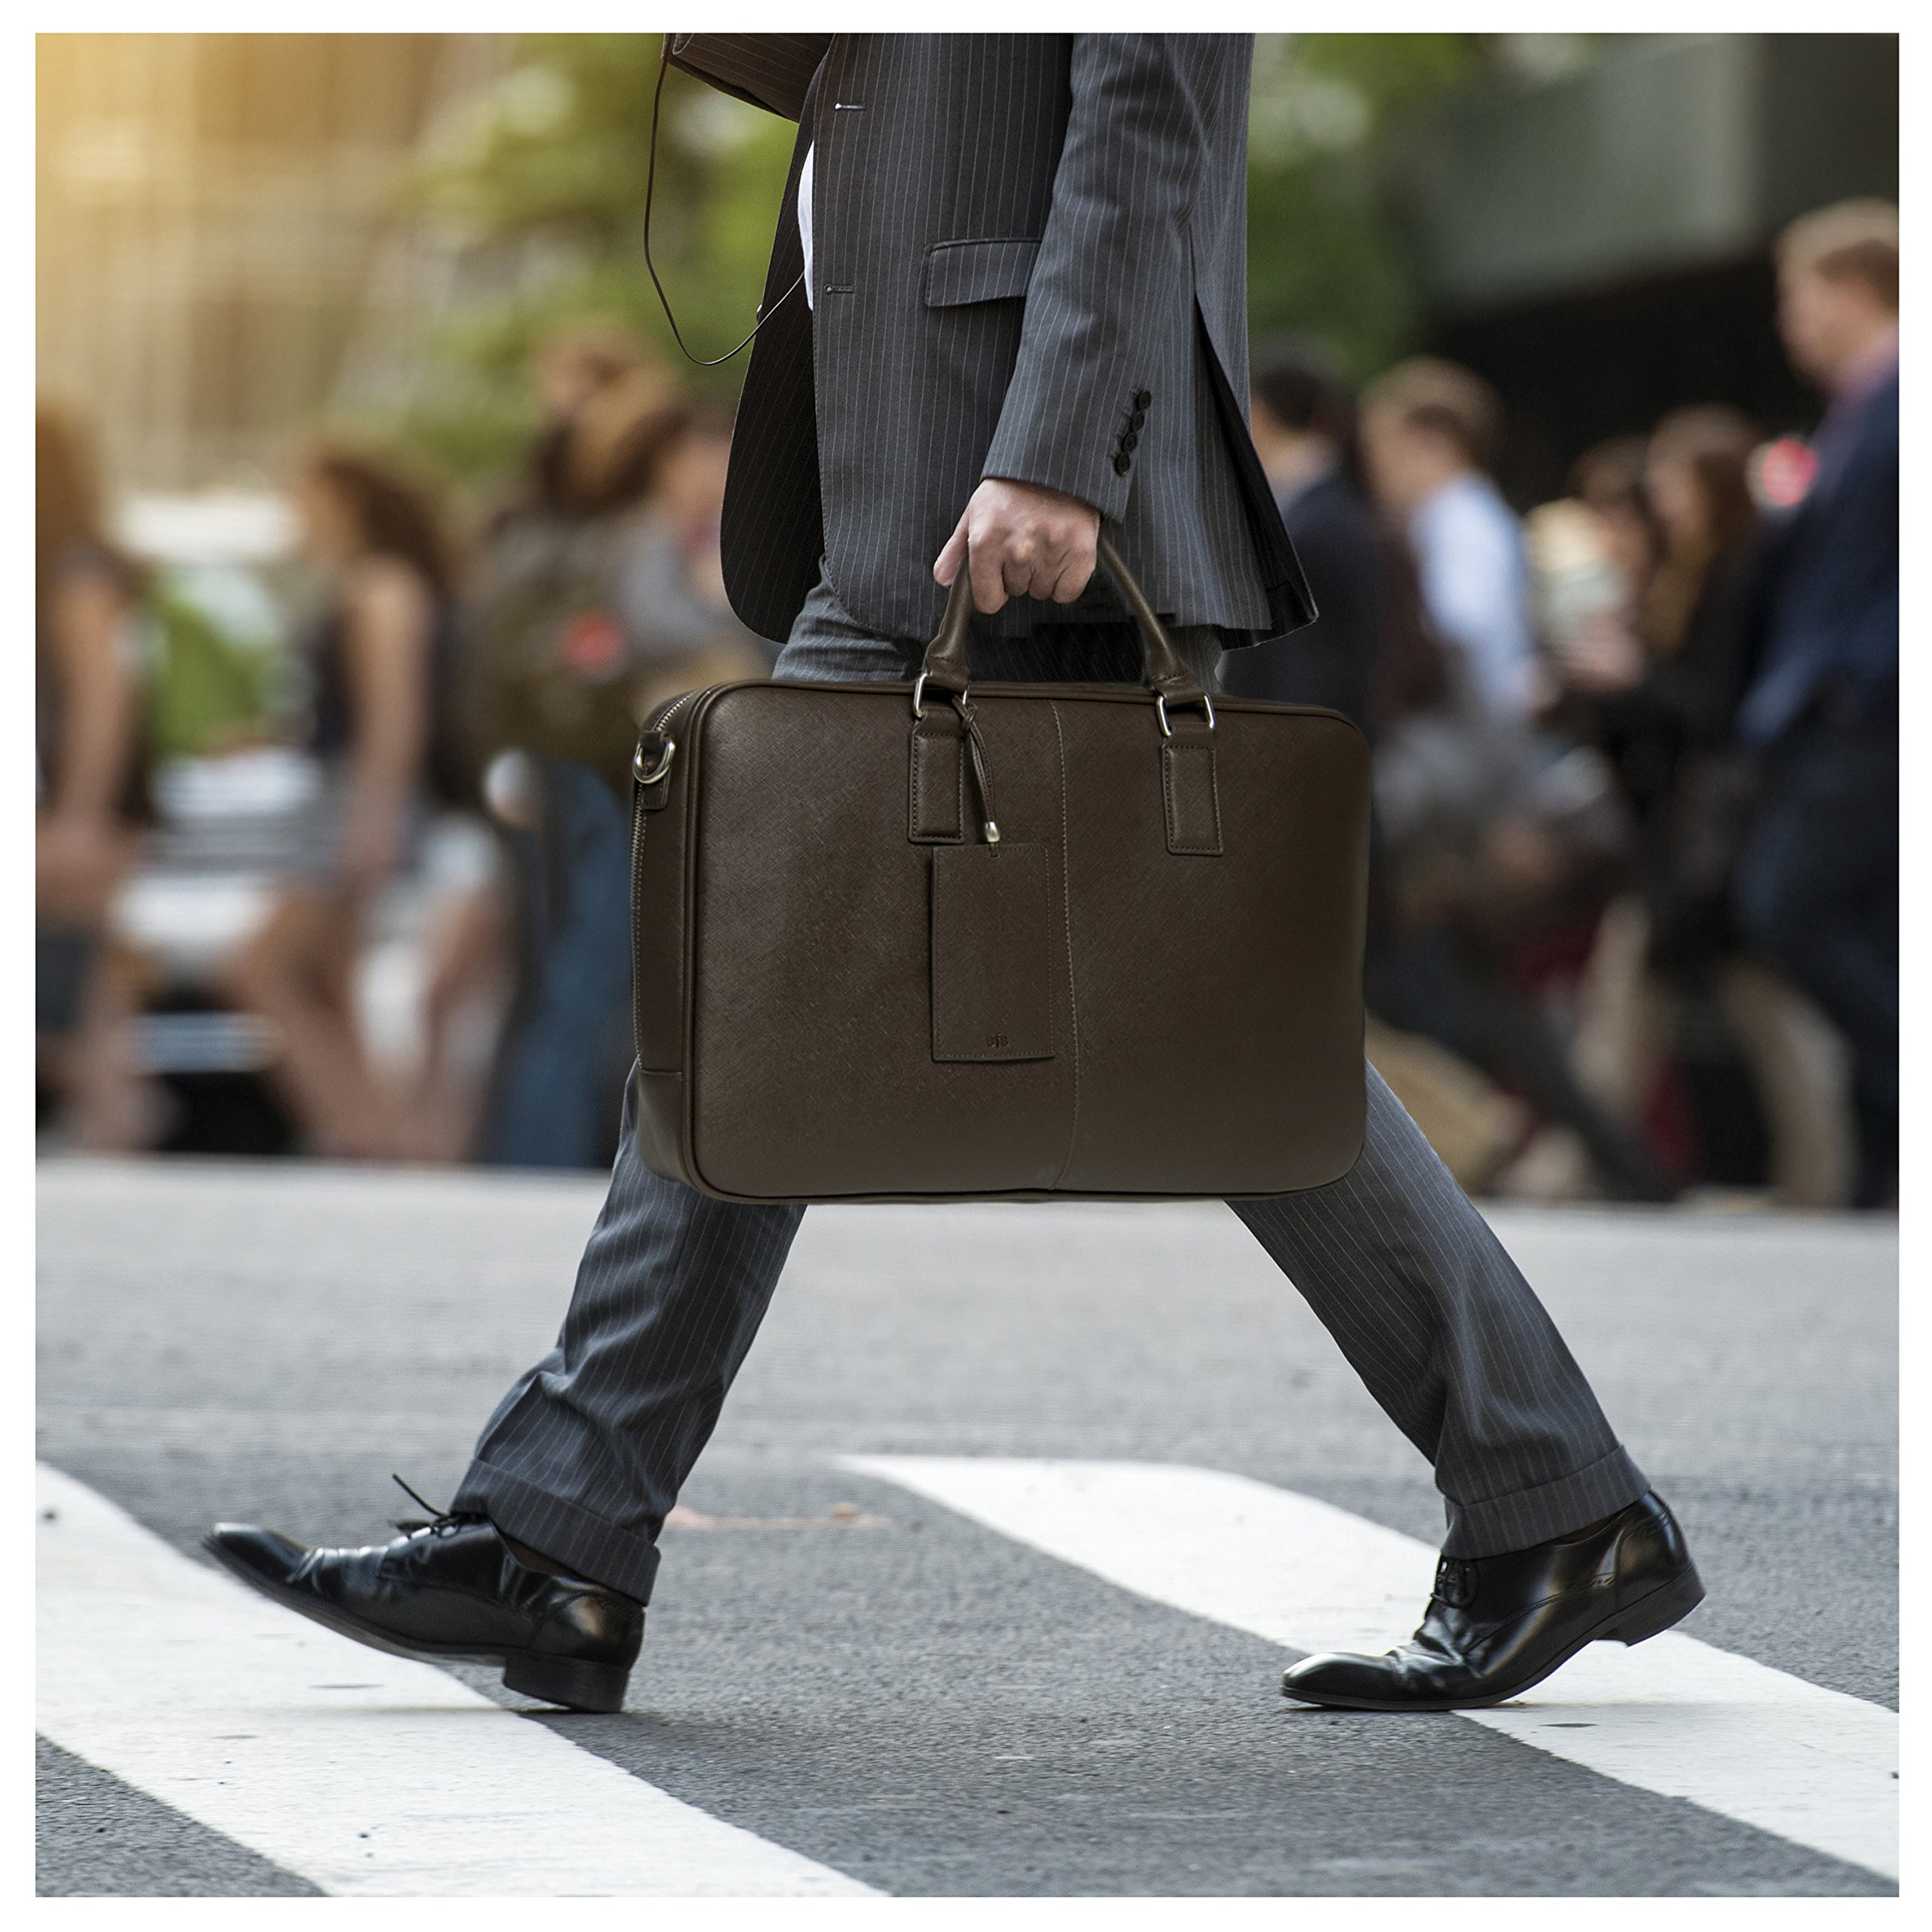 BfB Laptop Messenger Bag For Men - Designer Business Computer Bag Or Attorney Briefcase - Ideal Commuter Bag For Work And Travel - CHOCOLATE BROWN by My Best Friend is a Bag (Image #6)